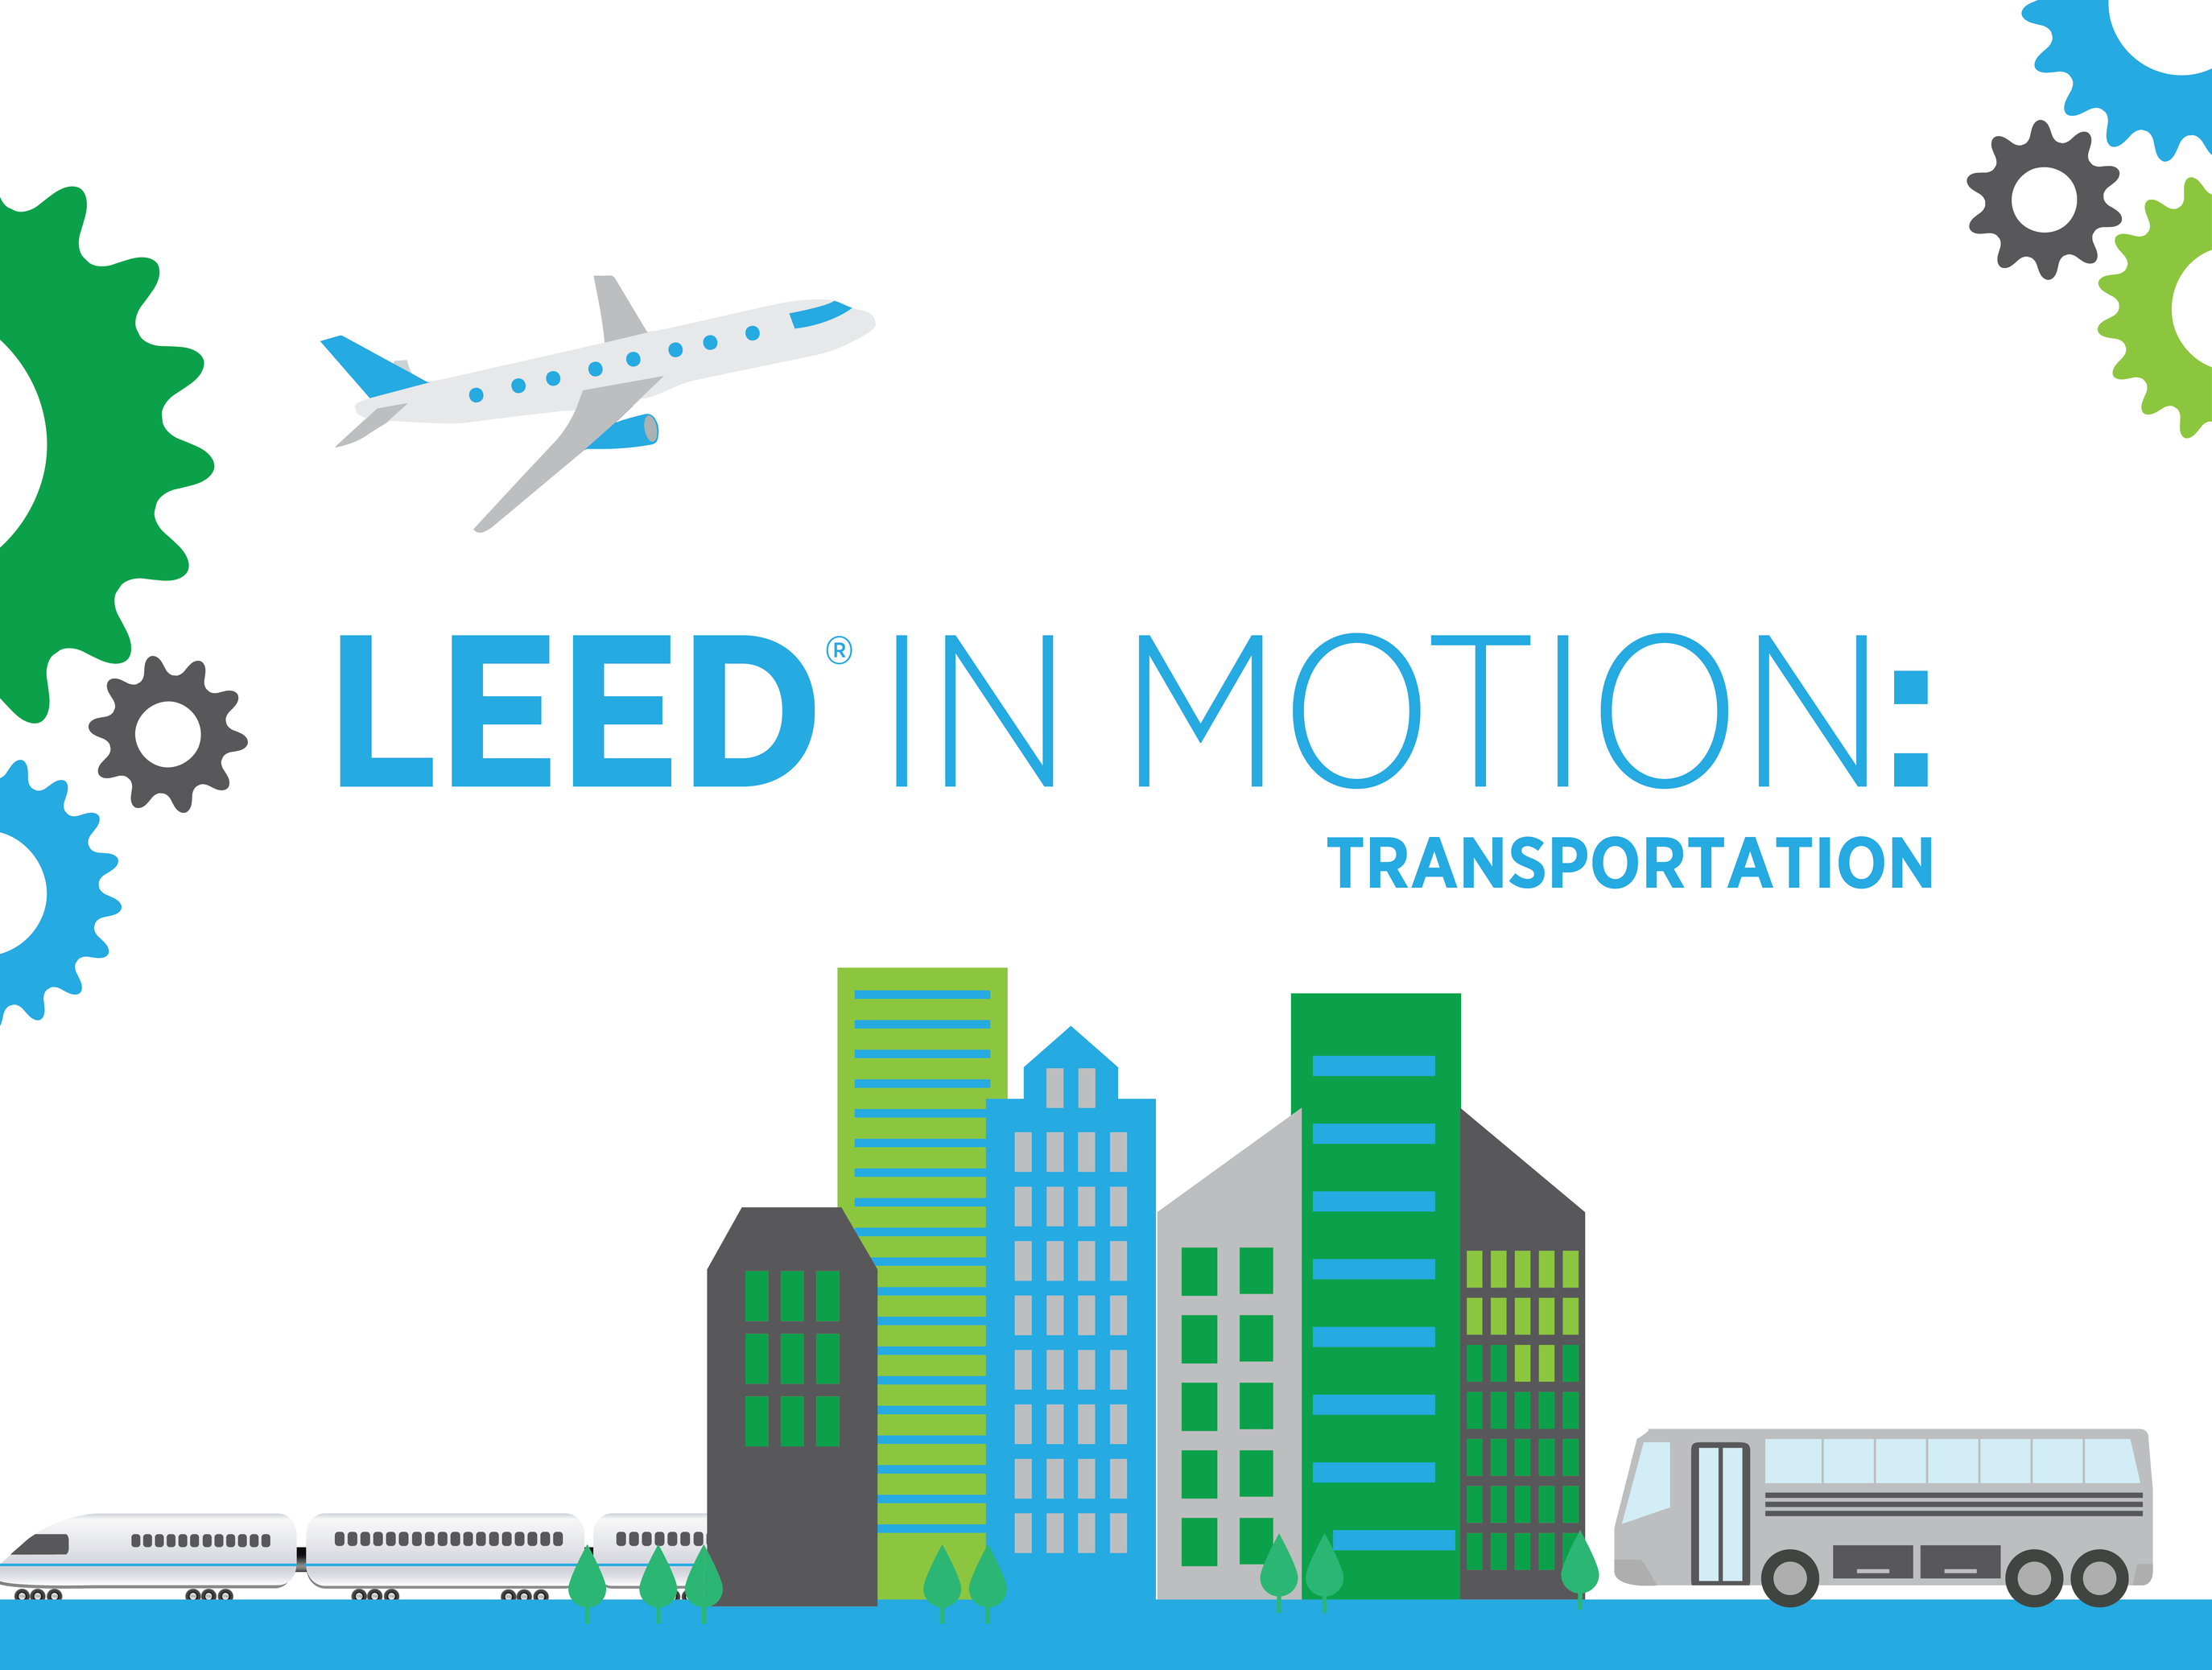 Triple bottom line from leed in motion transportation by usgbc million jobs and generate 1903 billion in labor earnings in the us in regions all over the world leed is a tool that spurs economic development 1betcityfo Choice Image